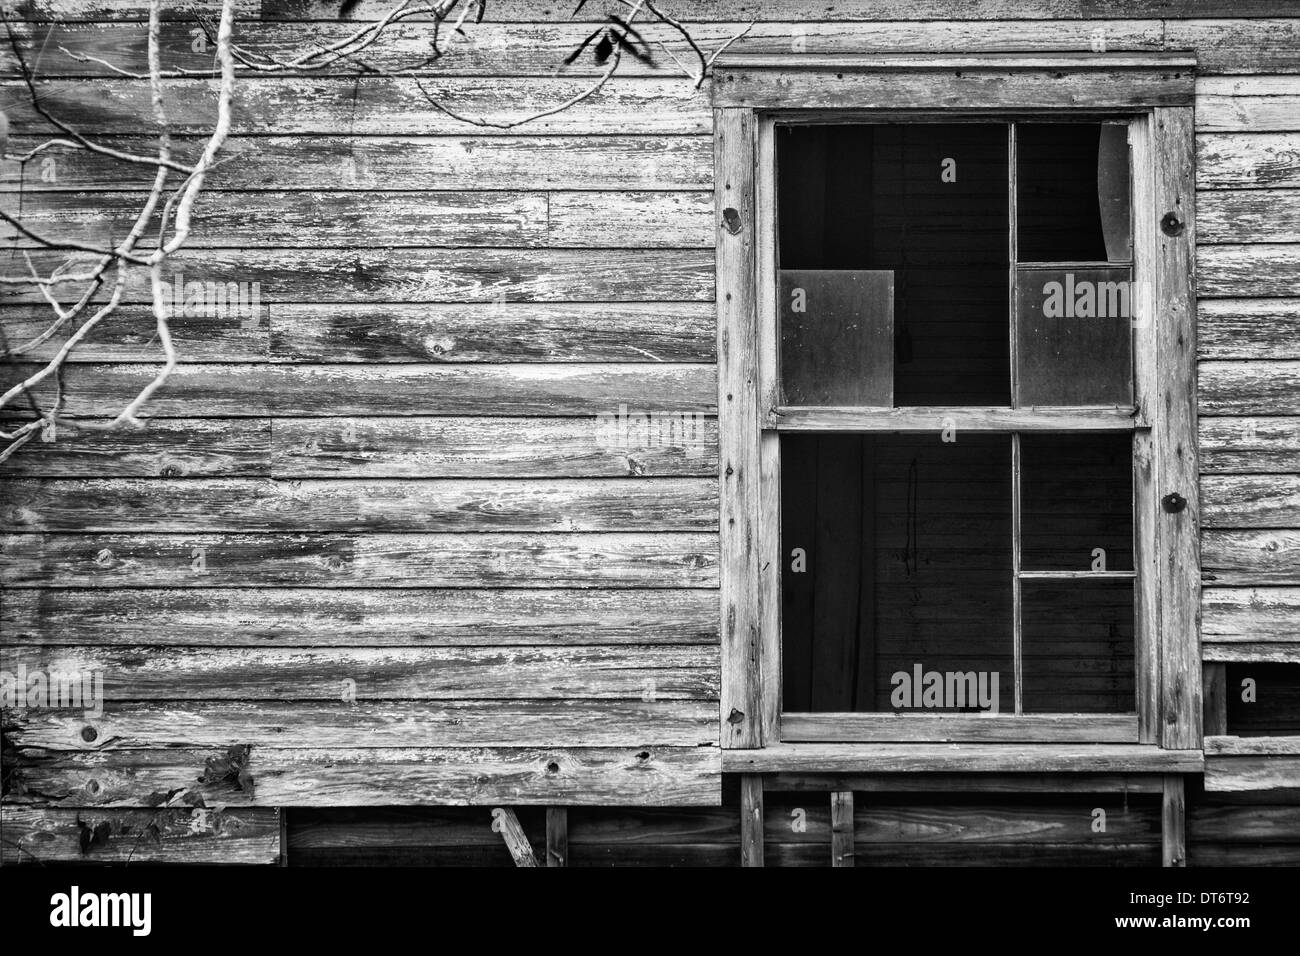 Broken window in a ramshackle house in Fernandina Beach, Florida. Converted to black and white. - Stock Image